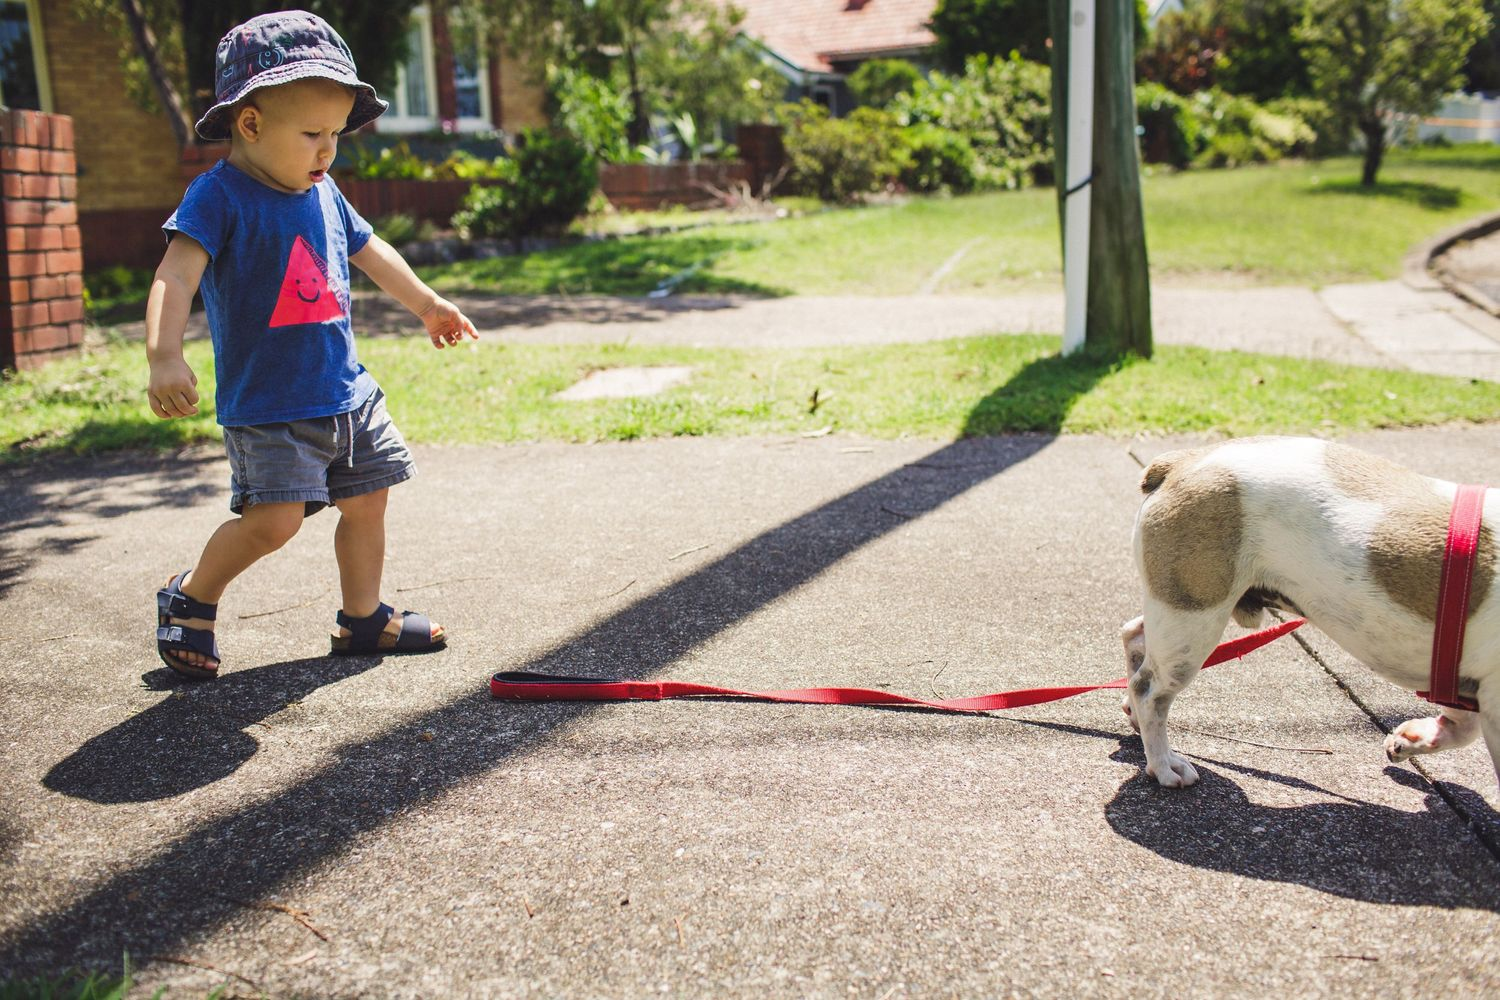 Child trying to get dog's lead